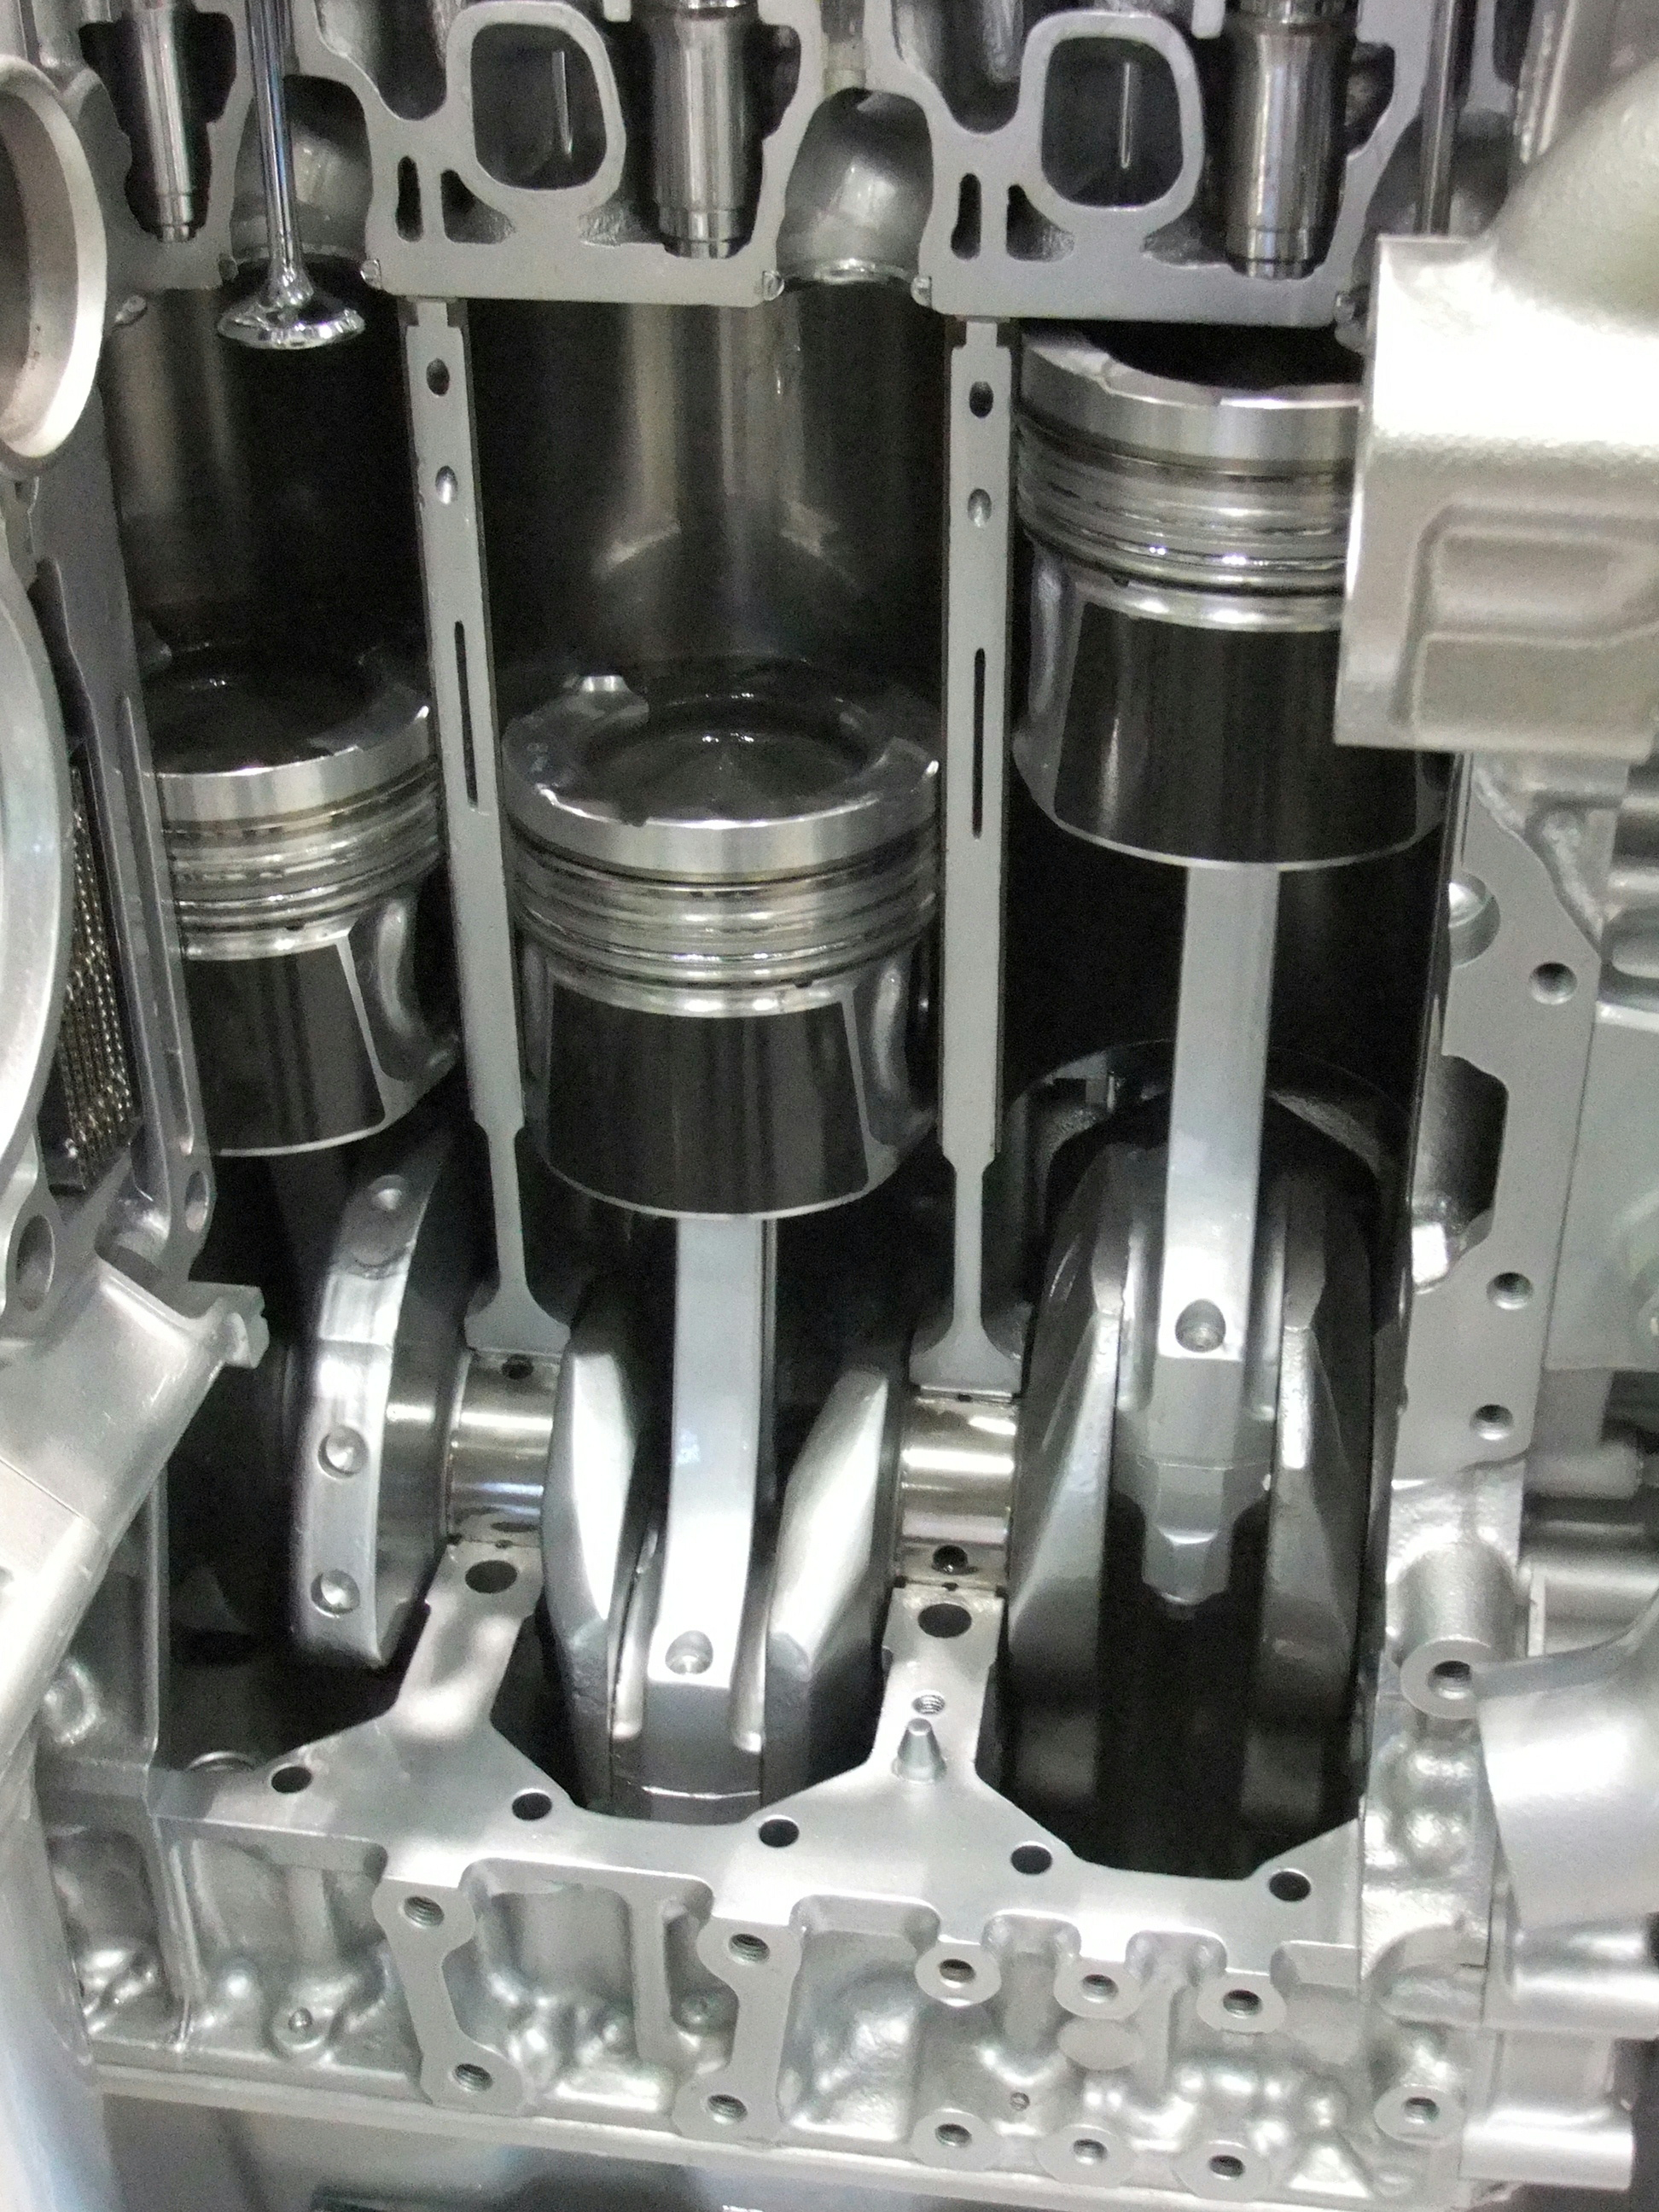 File:Internal combustion engine pistons of partial cross ...